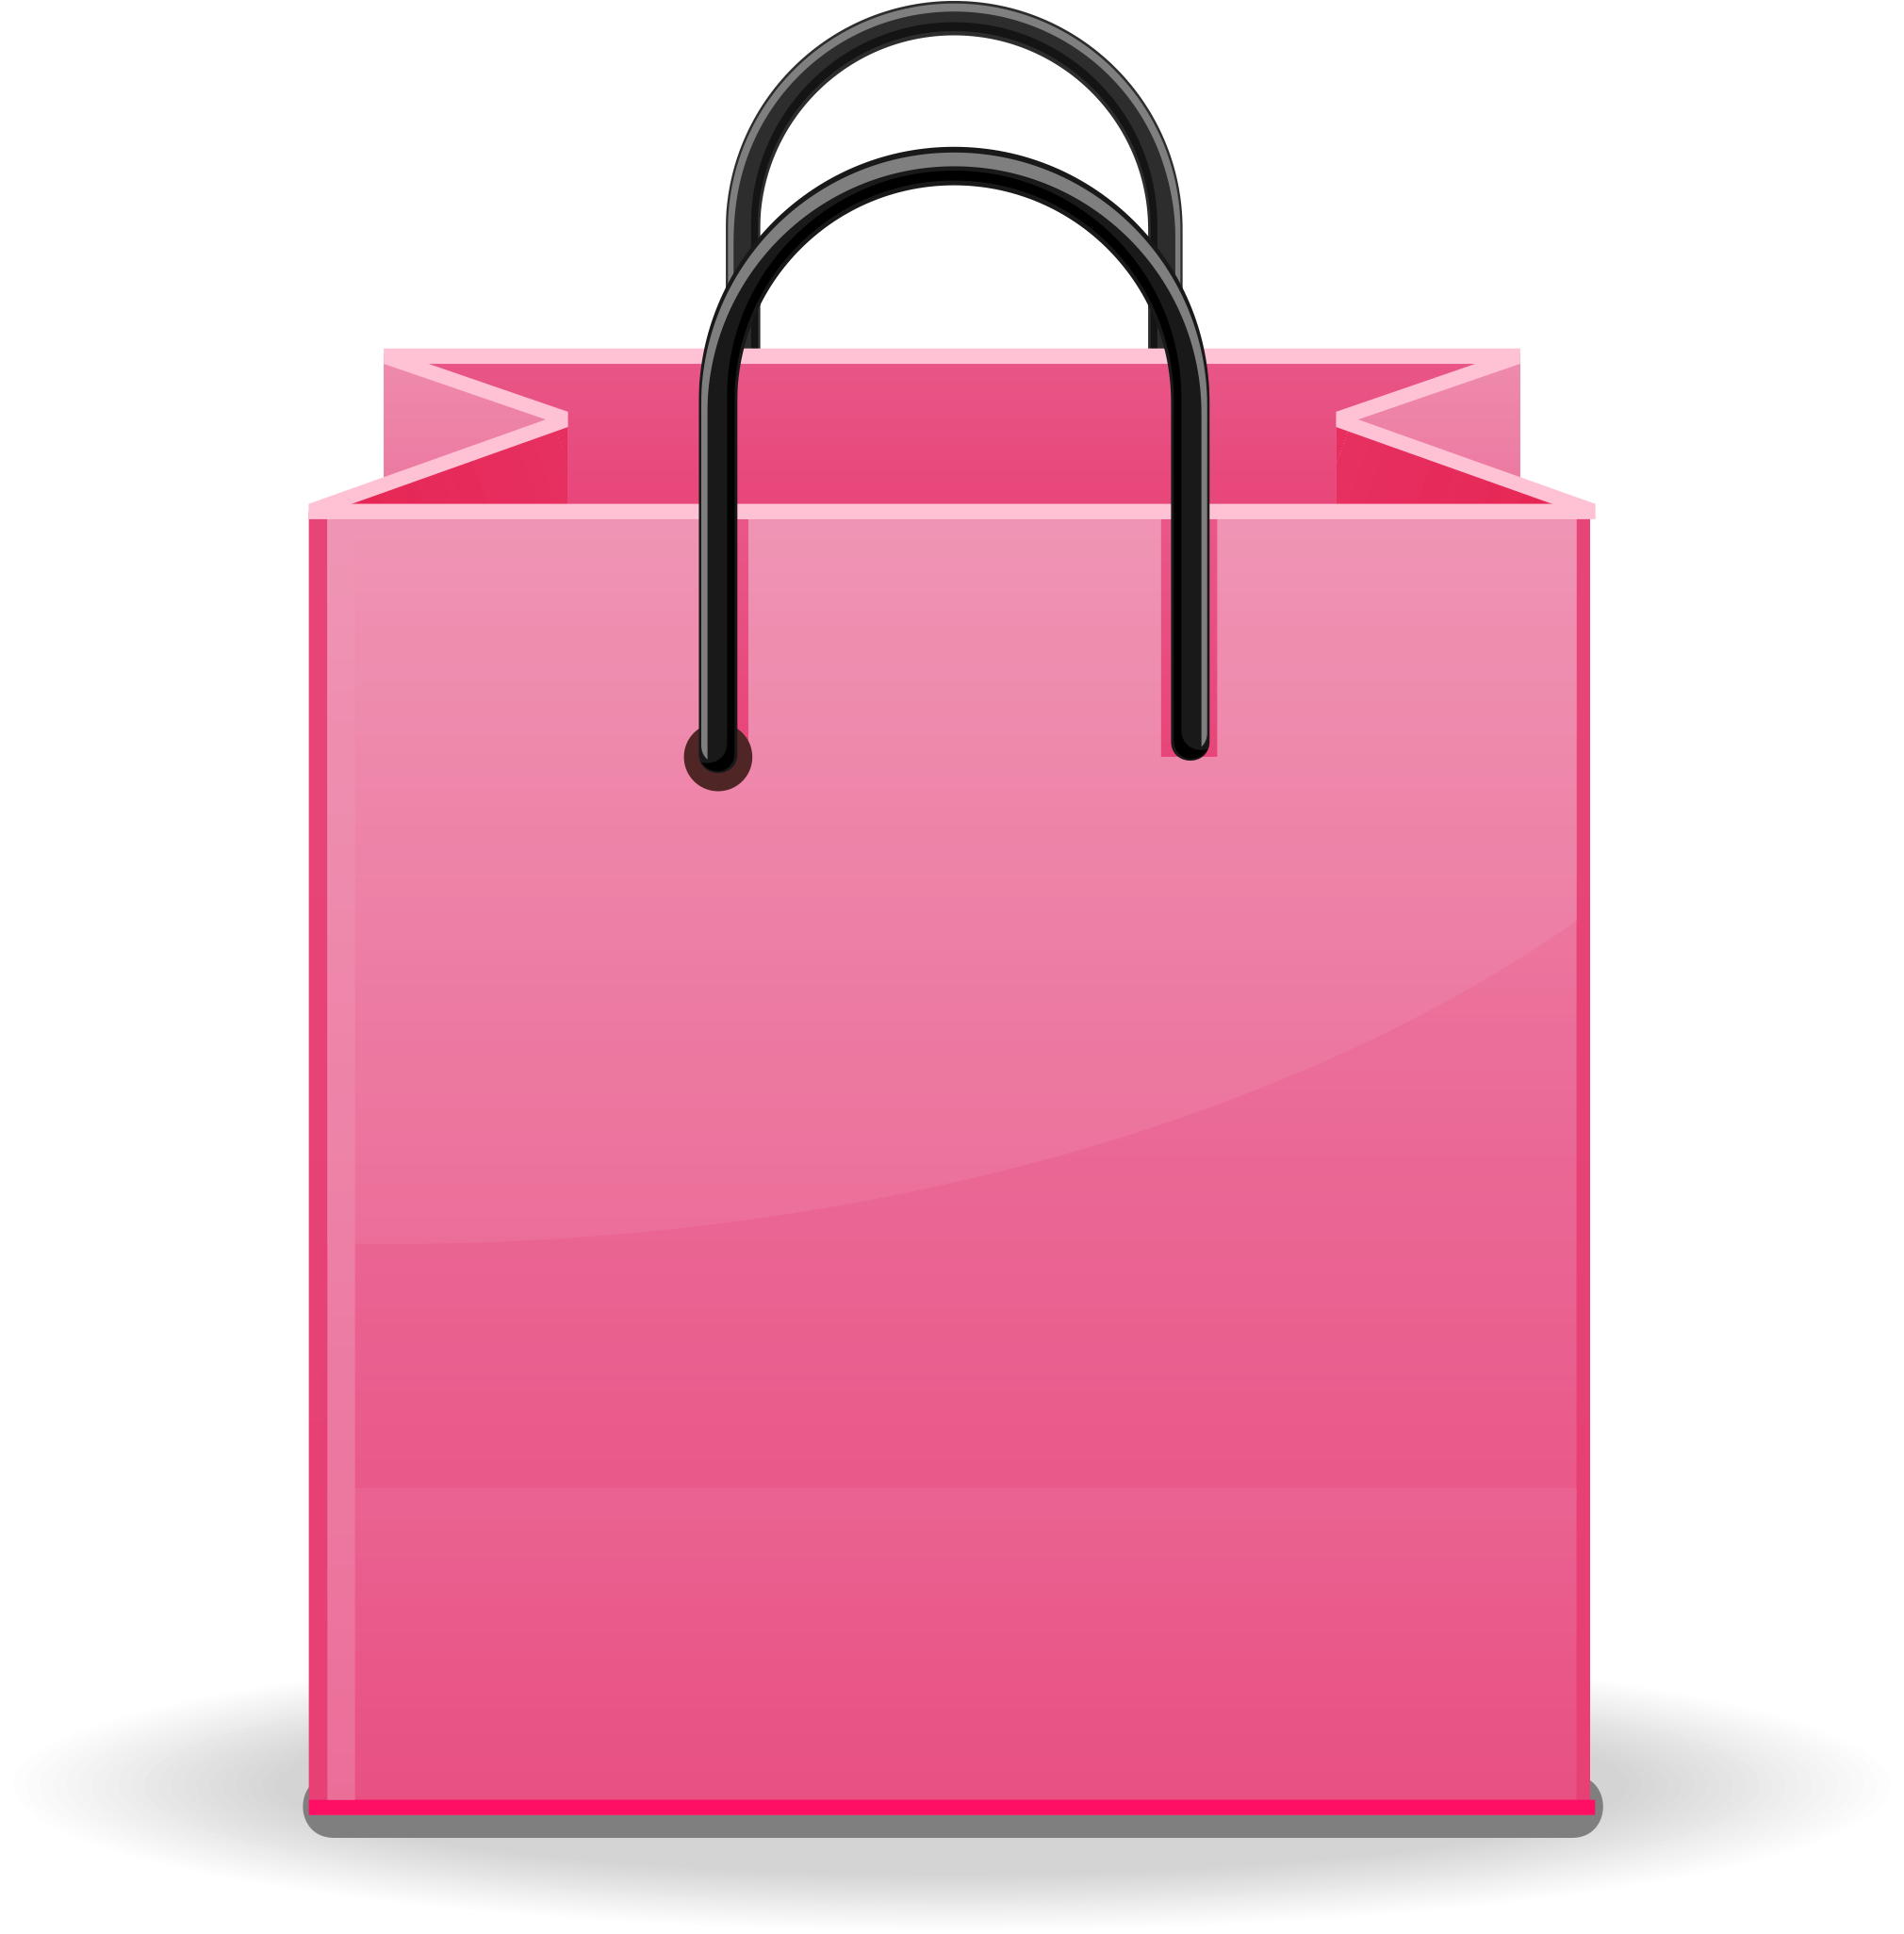 shopping bag clipart transparent 10 free Cliparts ...